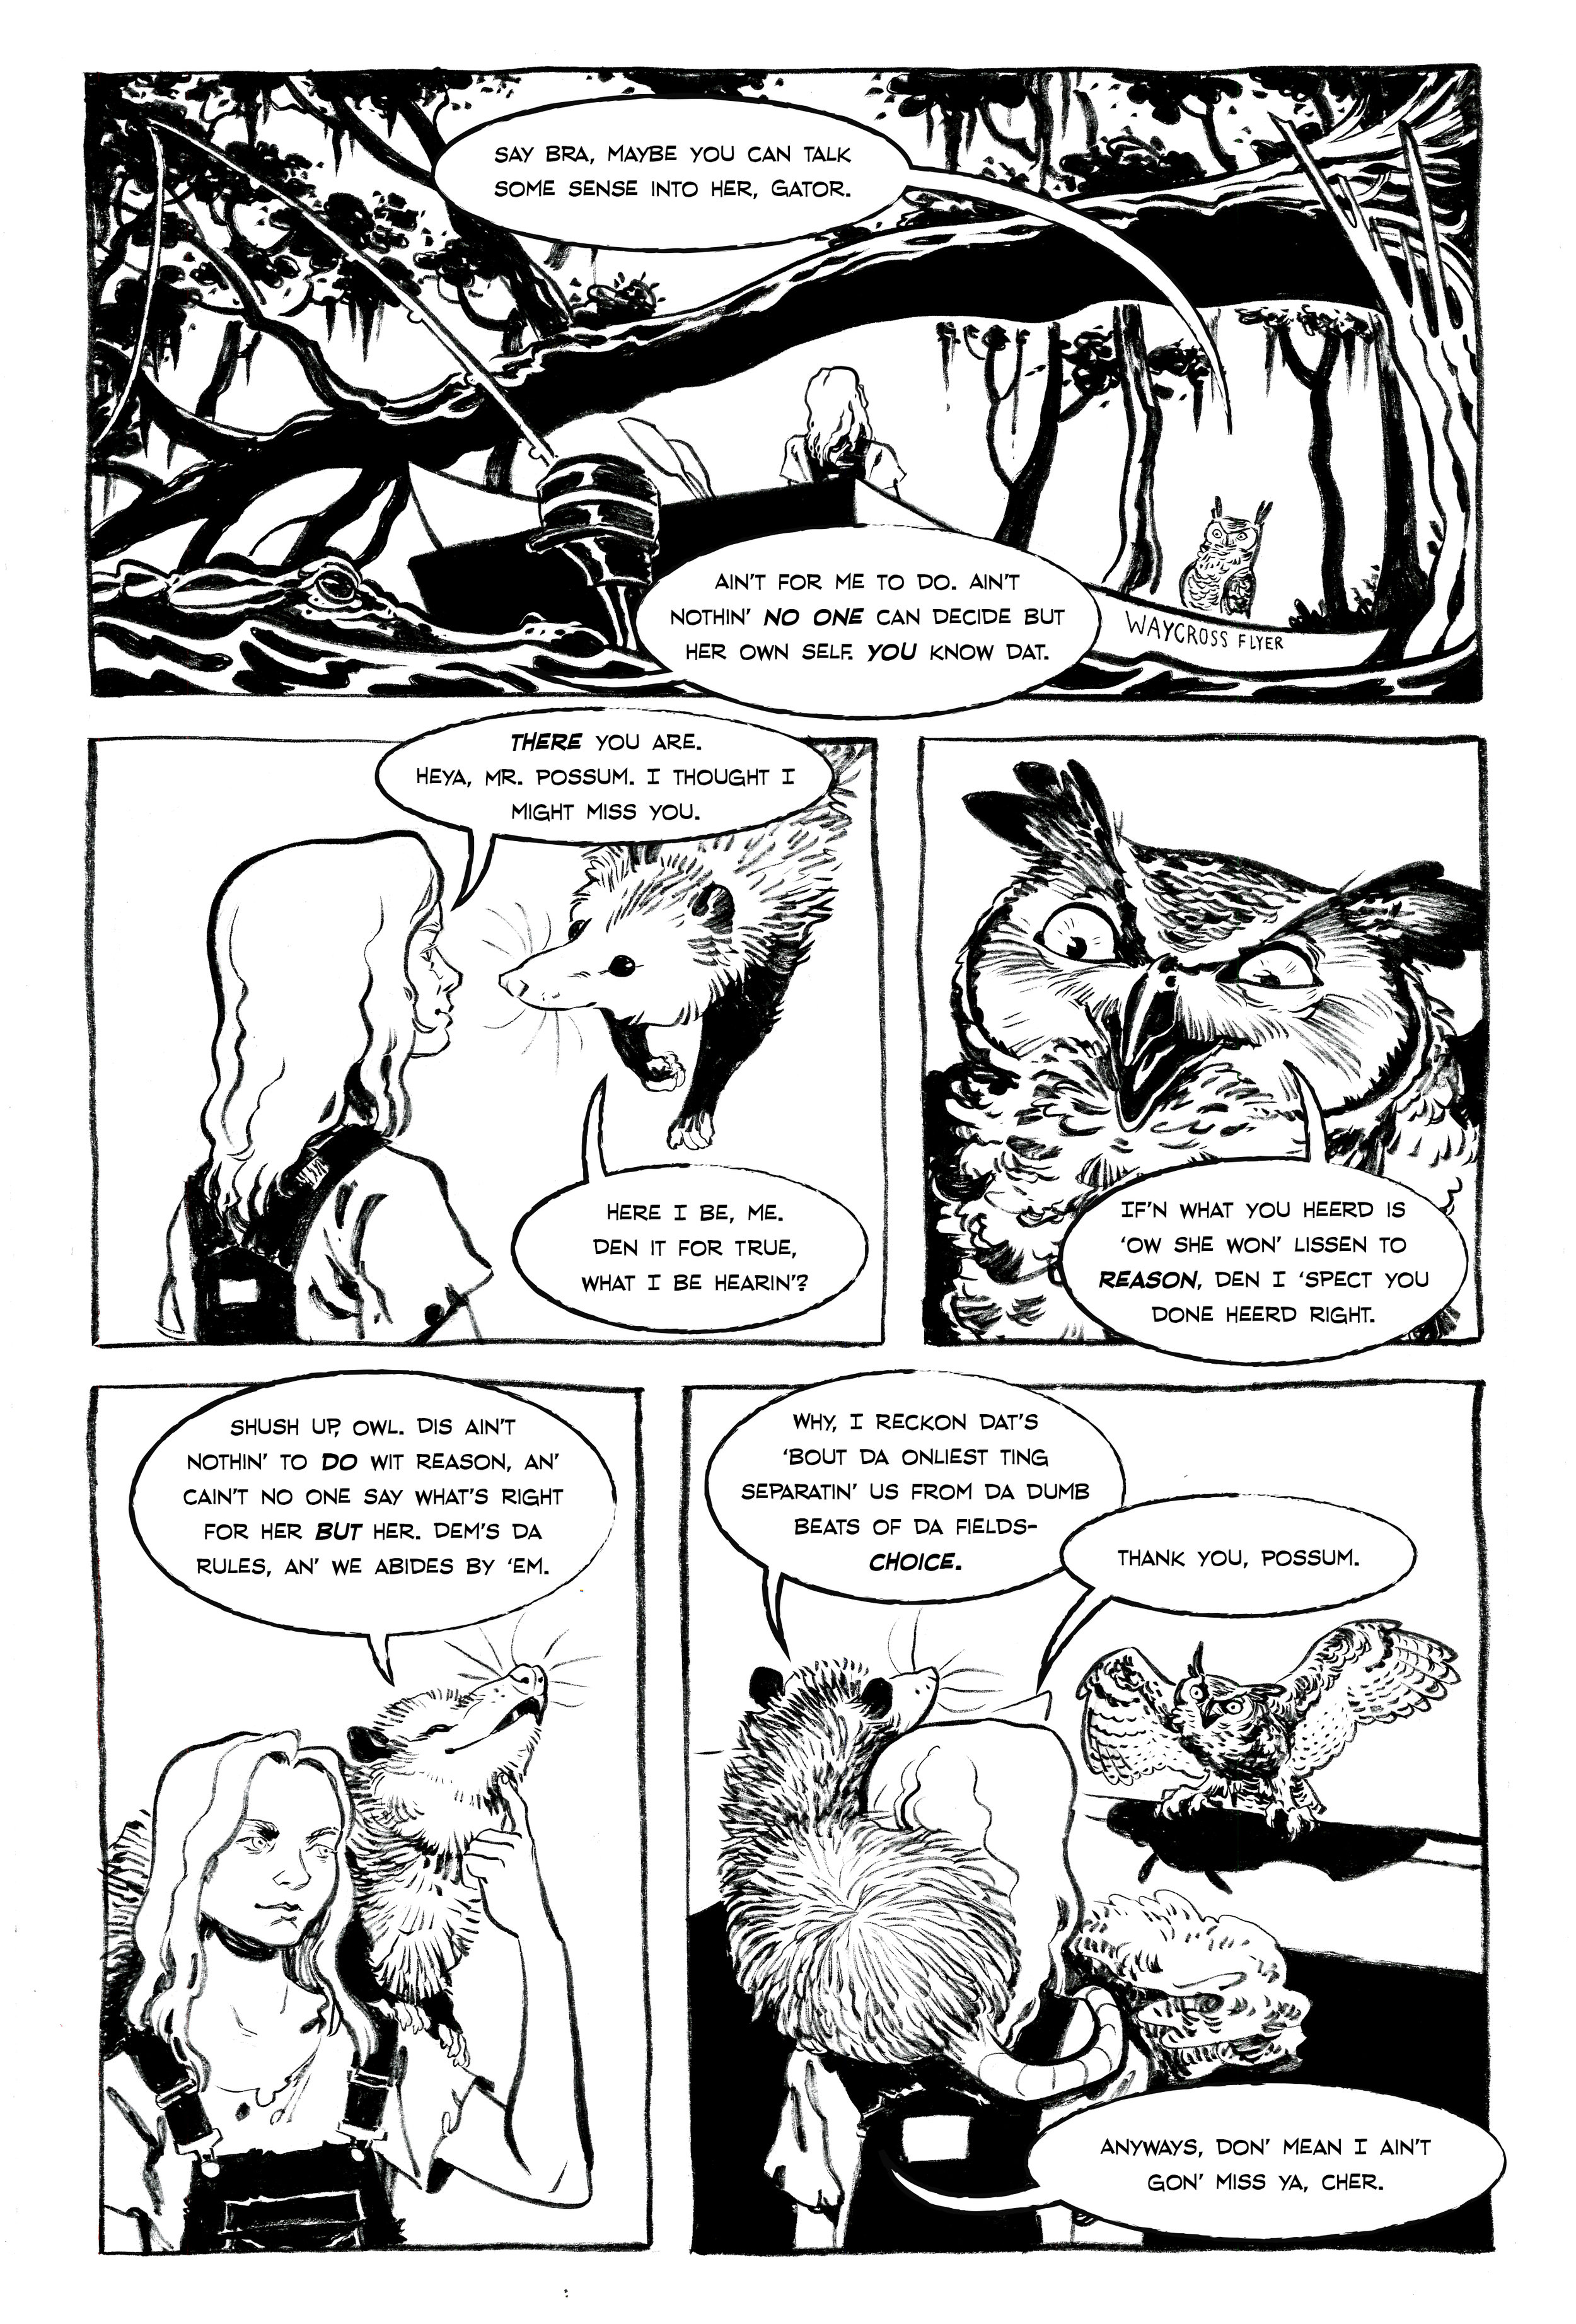 Page from   Mine! : a comics collection to benefit Planned Parenthood    Story by Caitlin Kiernan. Ink. 2017.